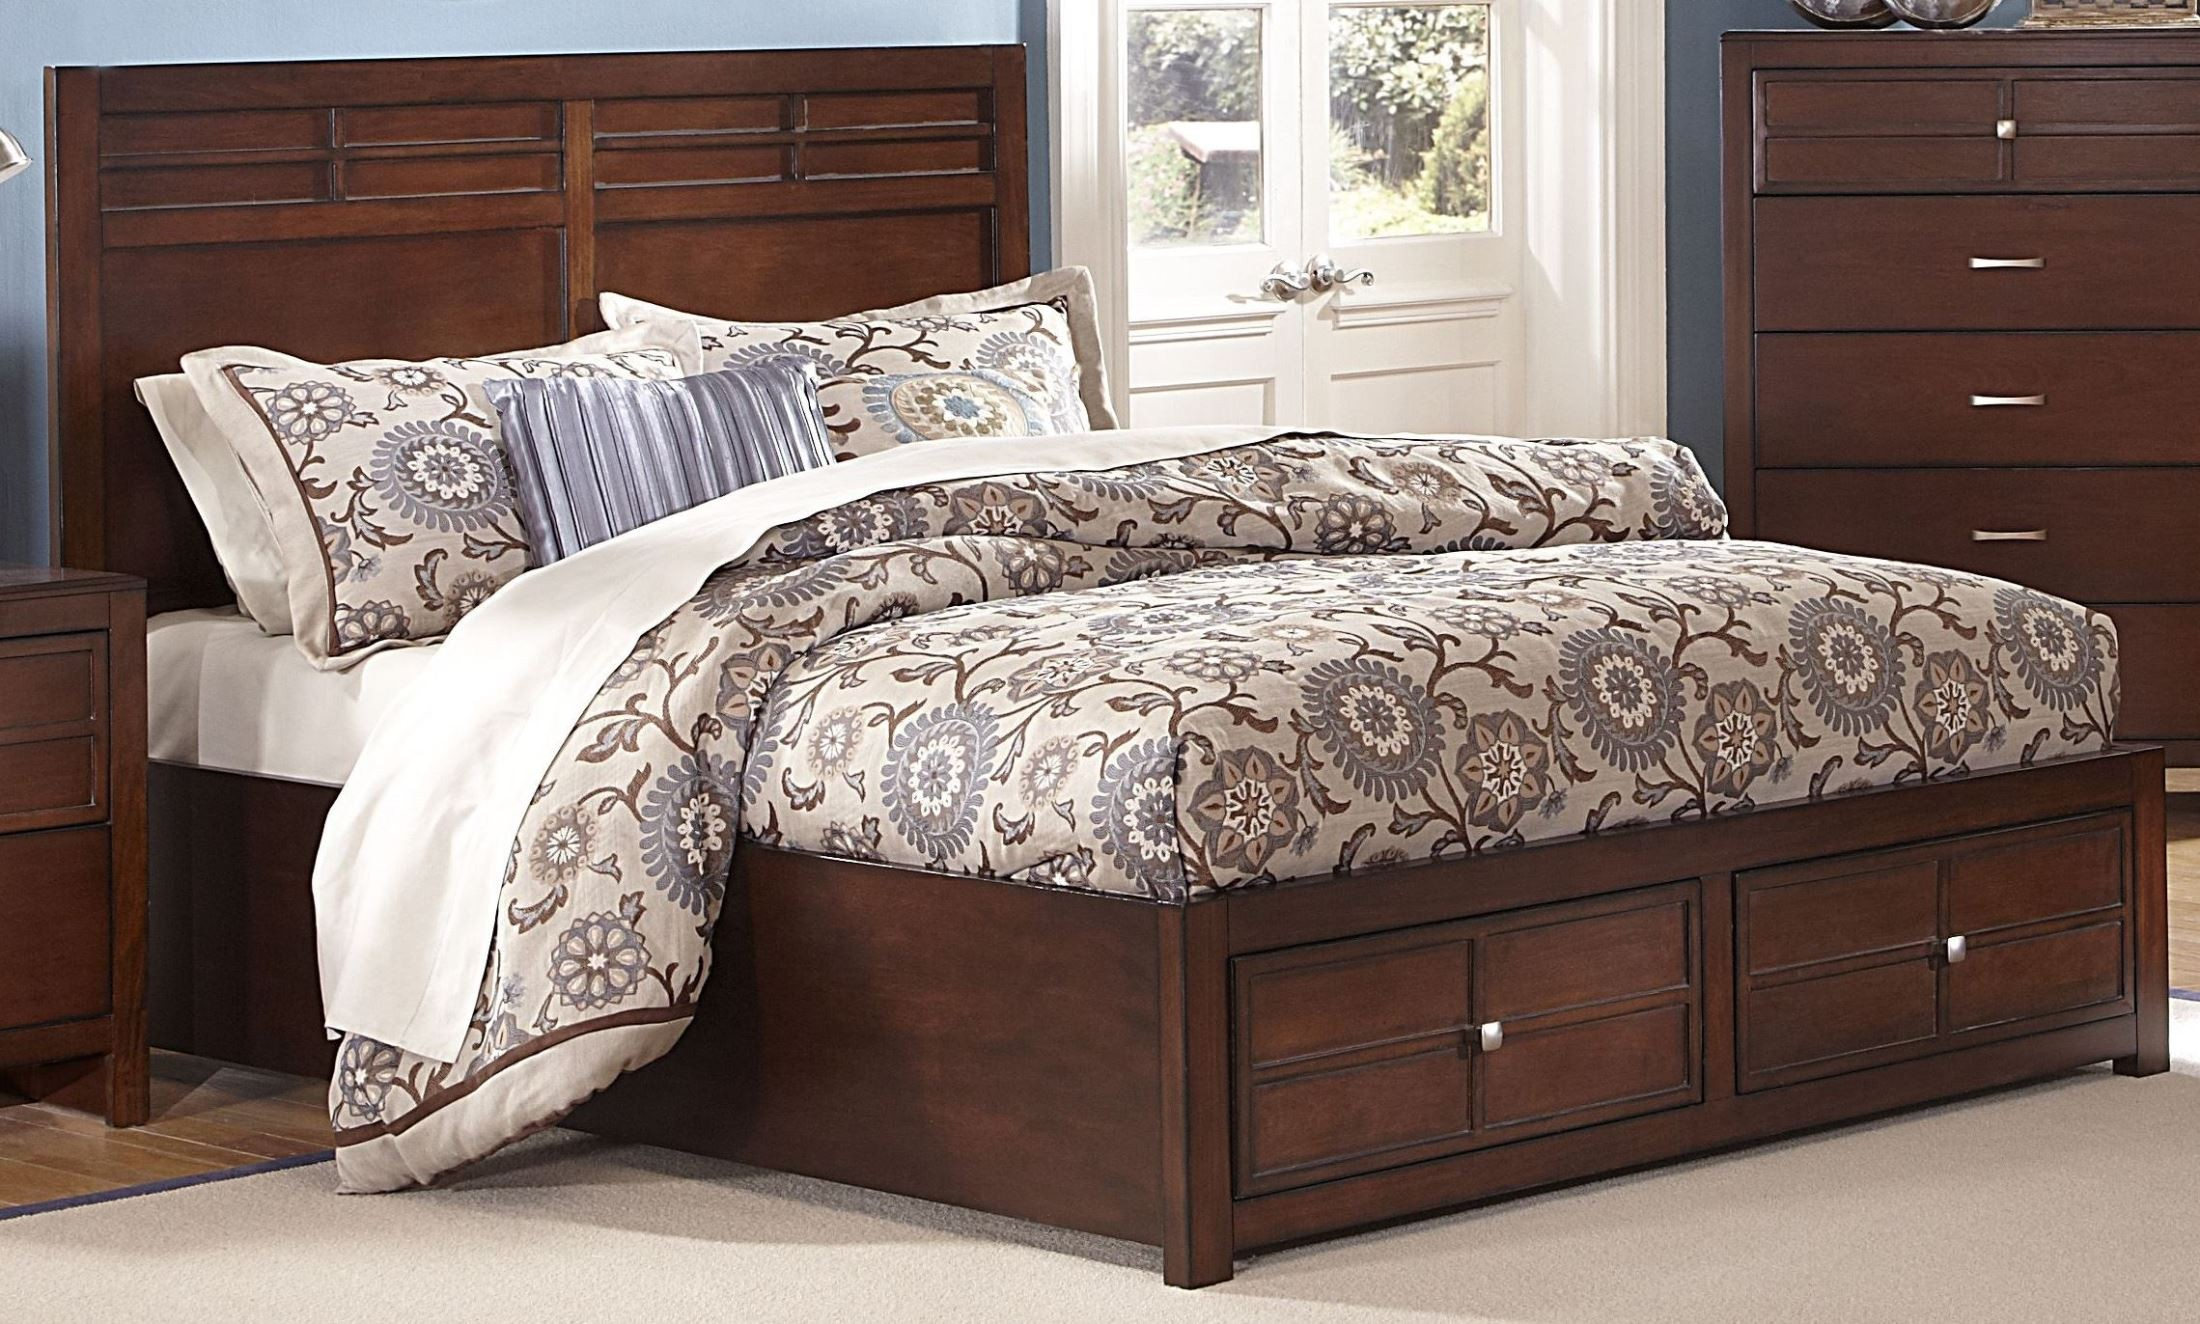 Kensington Burnished Cherry Cal King Platform Storage Bed